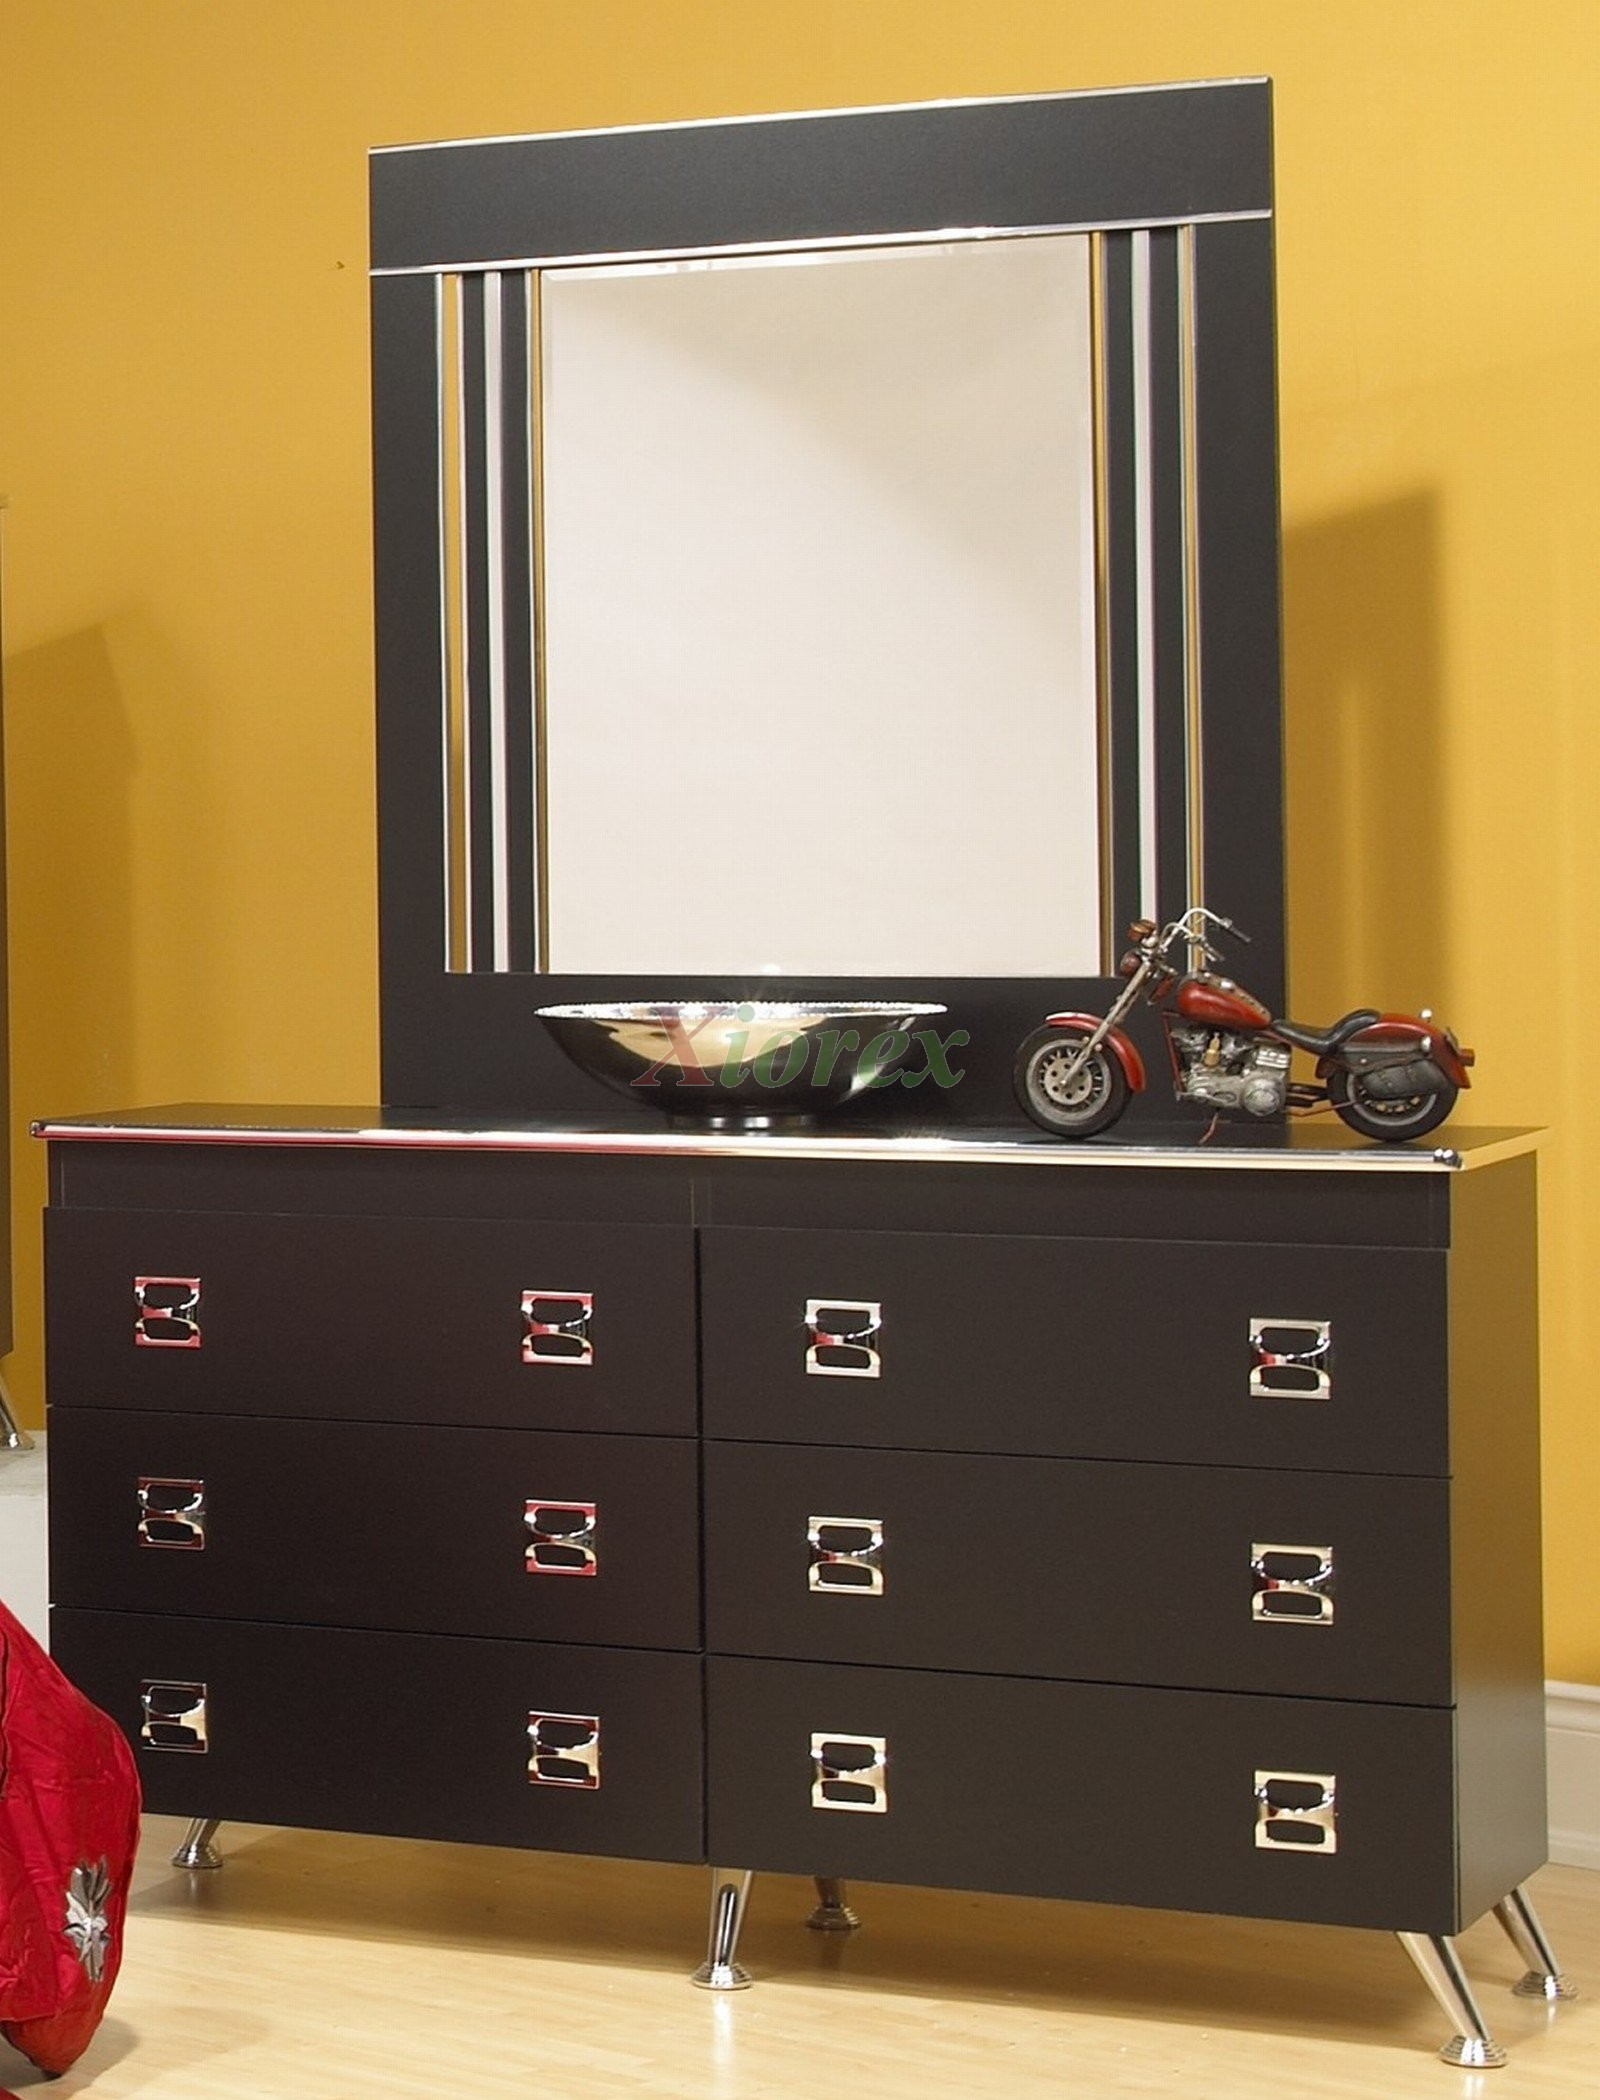 studios heather description set concave and contemporary dresser project fred drawers with bedroom portfolio